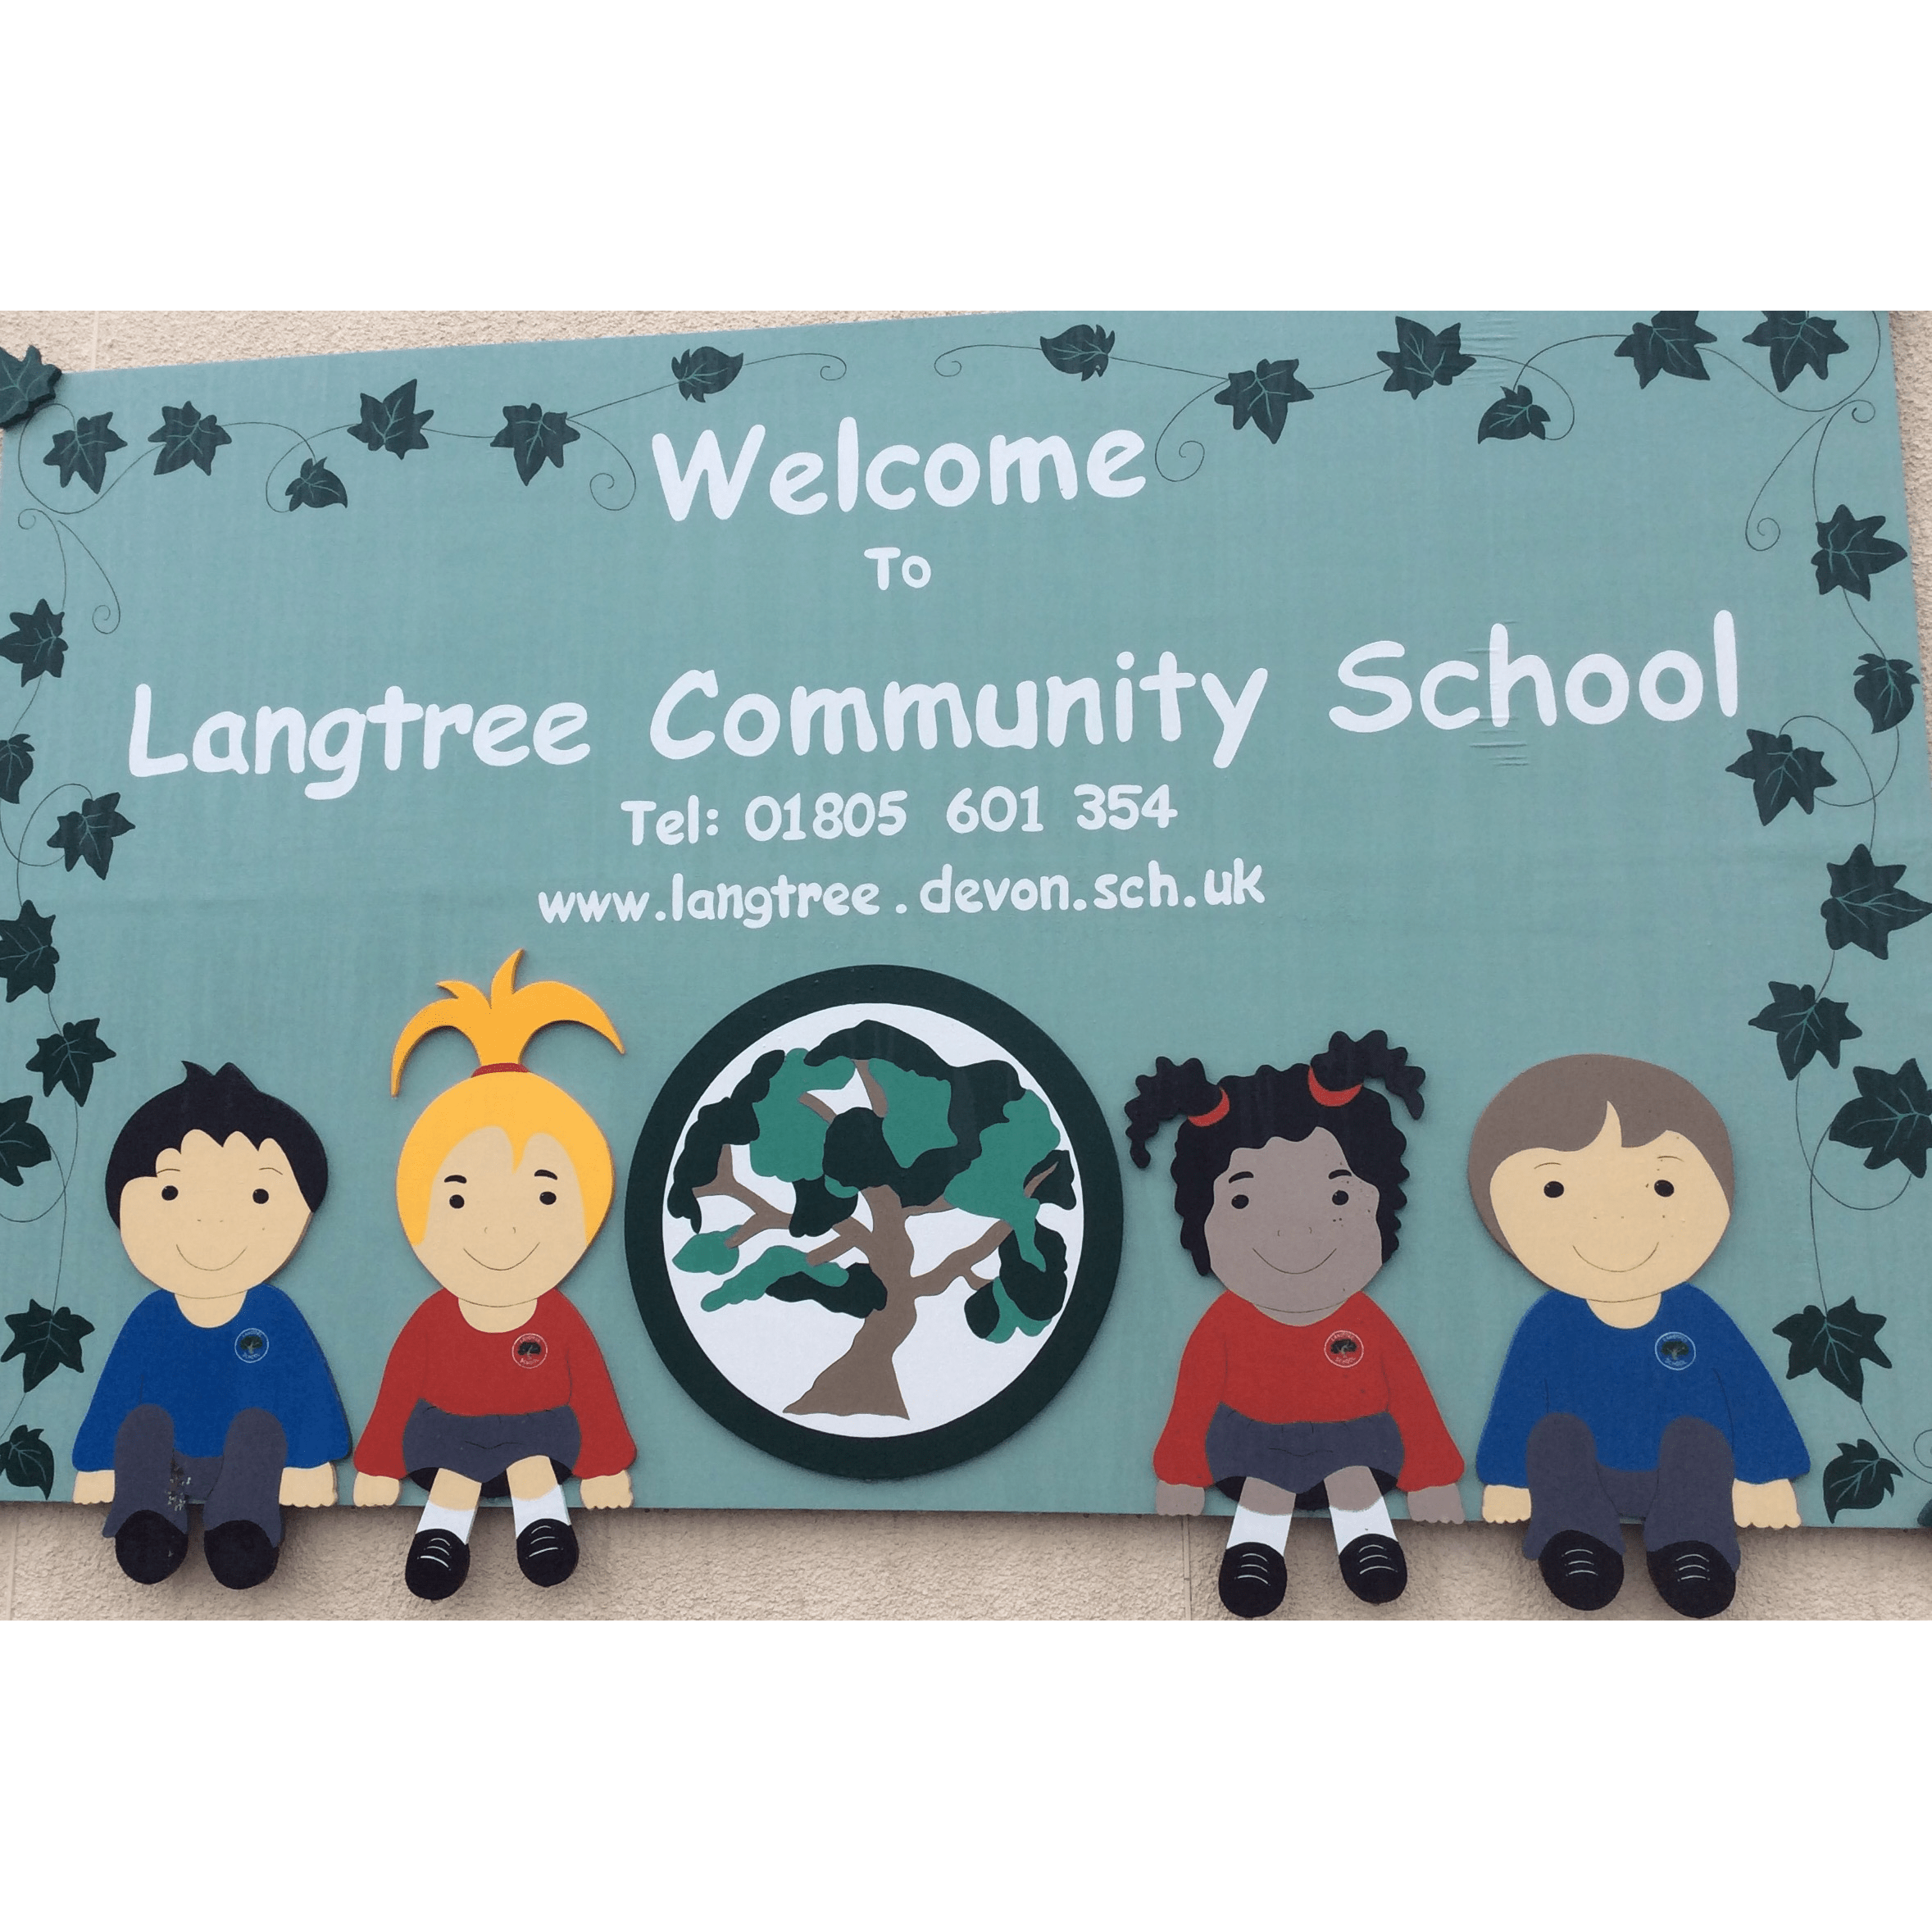 Langtree Community School, Devon